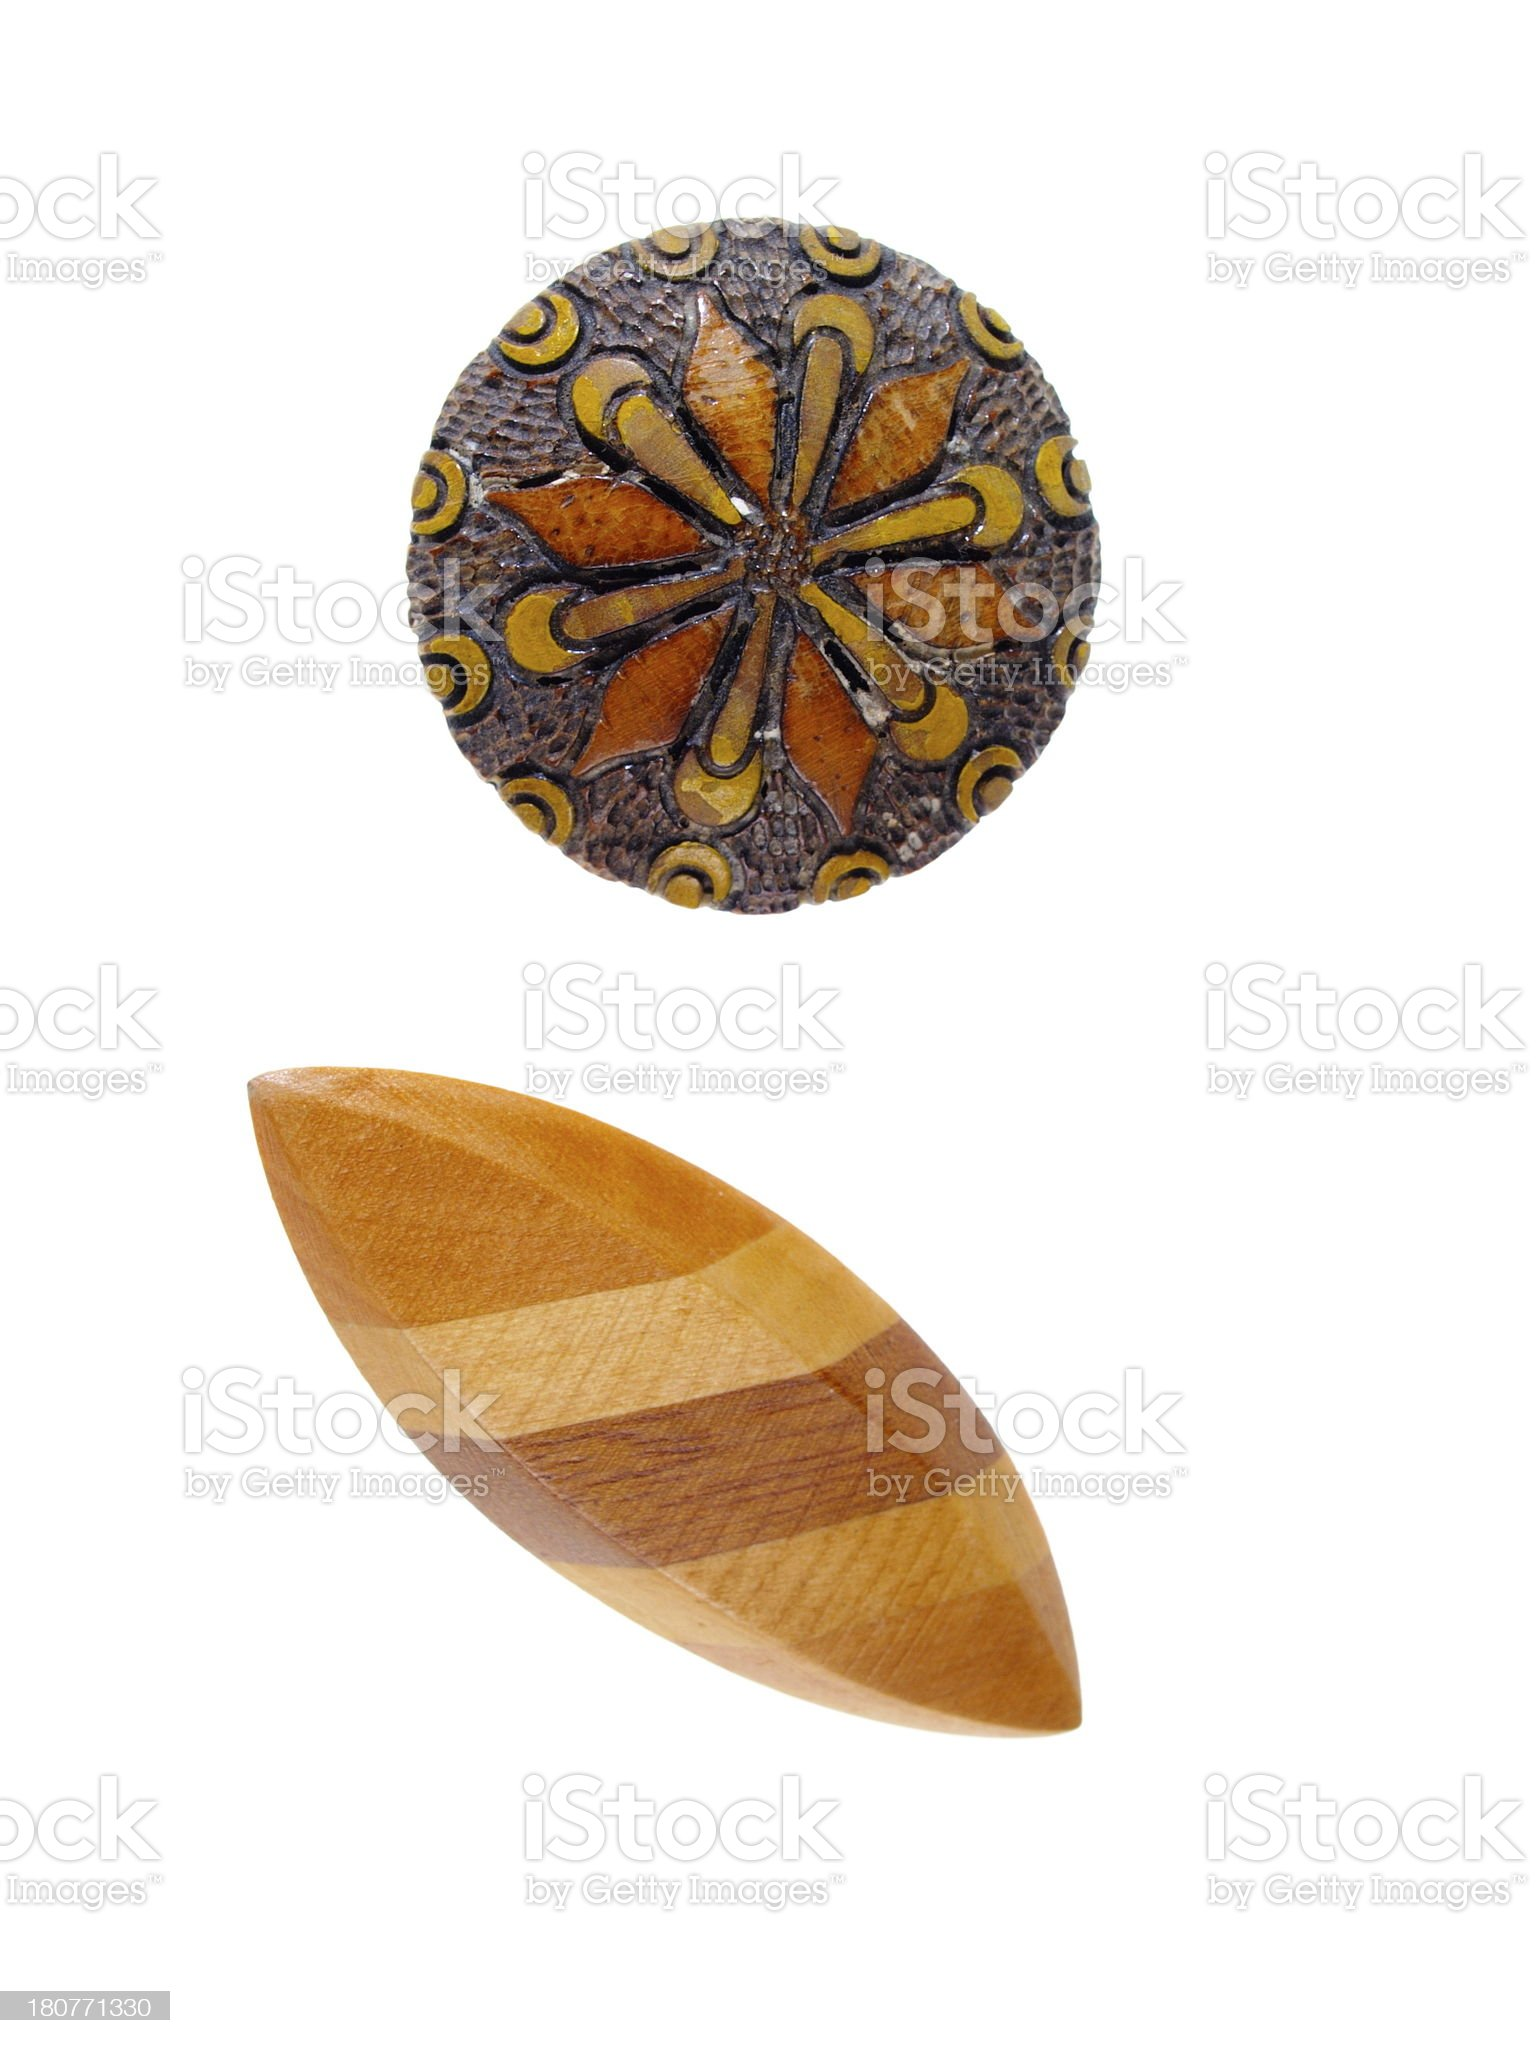 Wooden Jewelry royalty-free stock photo